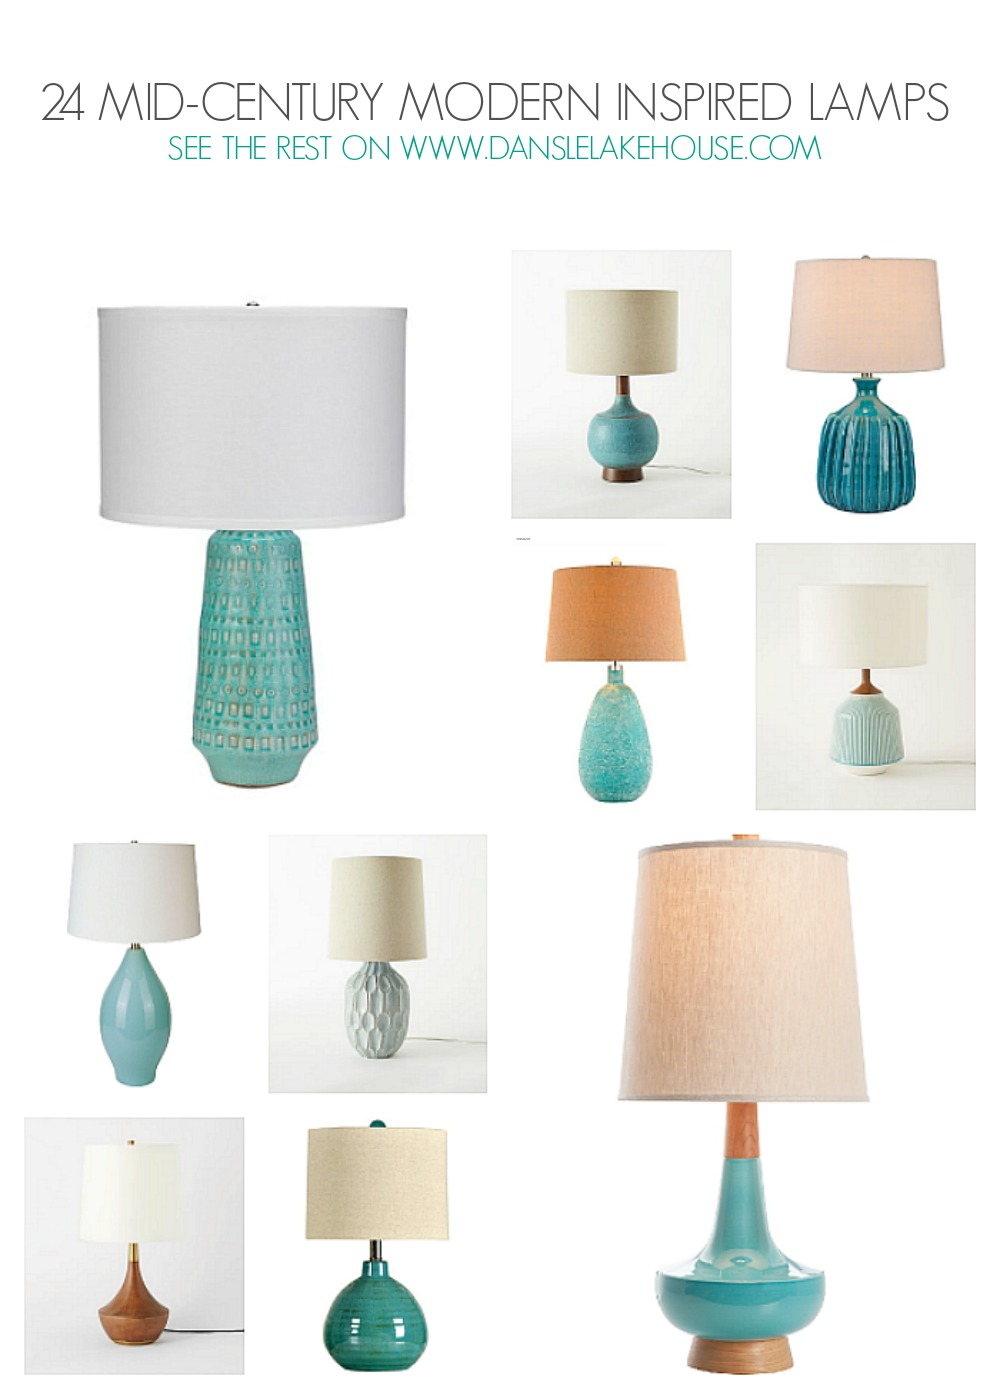 24 Stunning Mid-Century Modern Inspired Lamps - See the Rest on www.danslelakehouse.com // mid-century modern inspired home decor